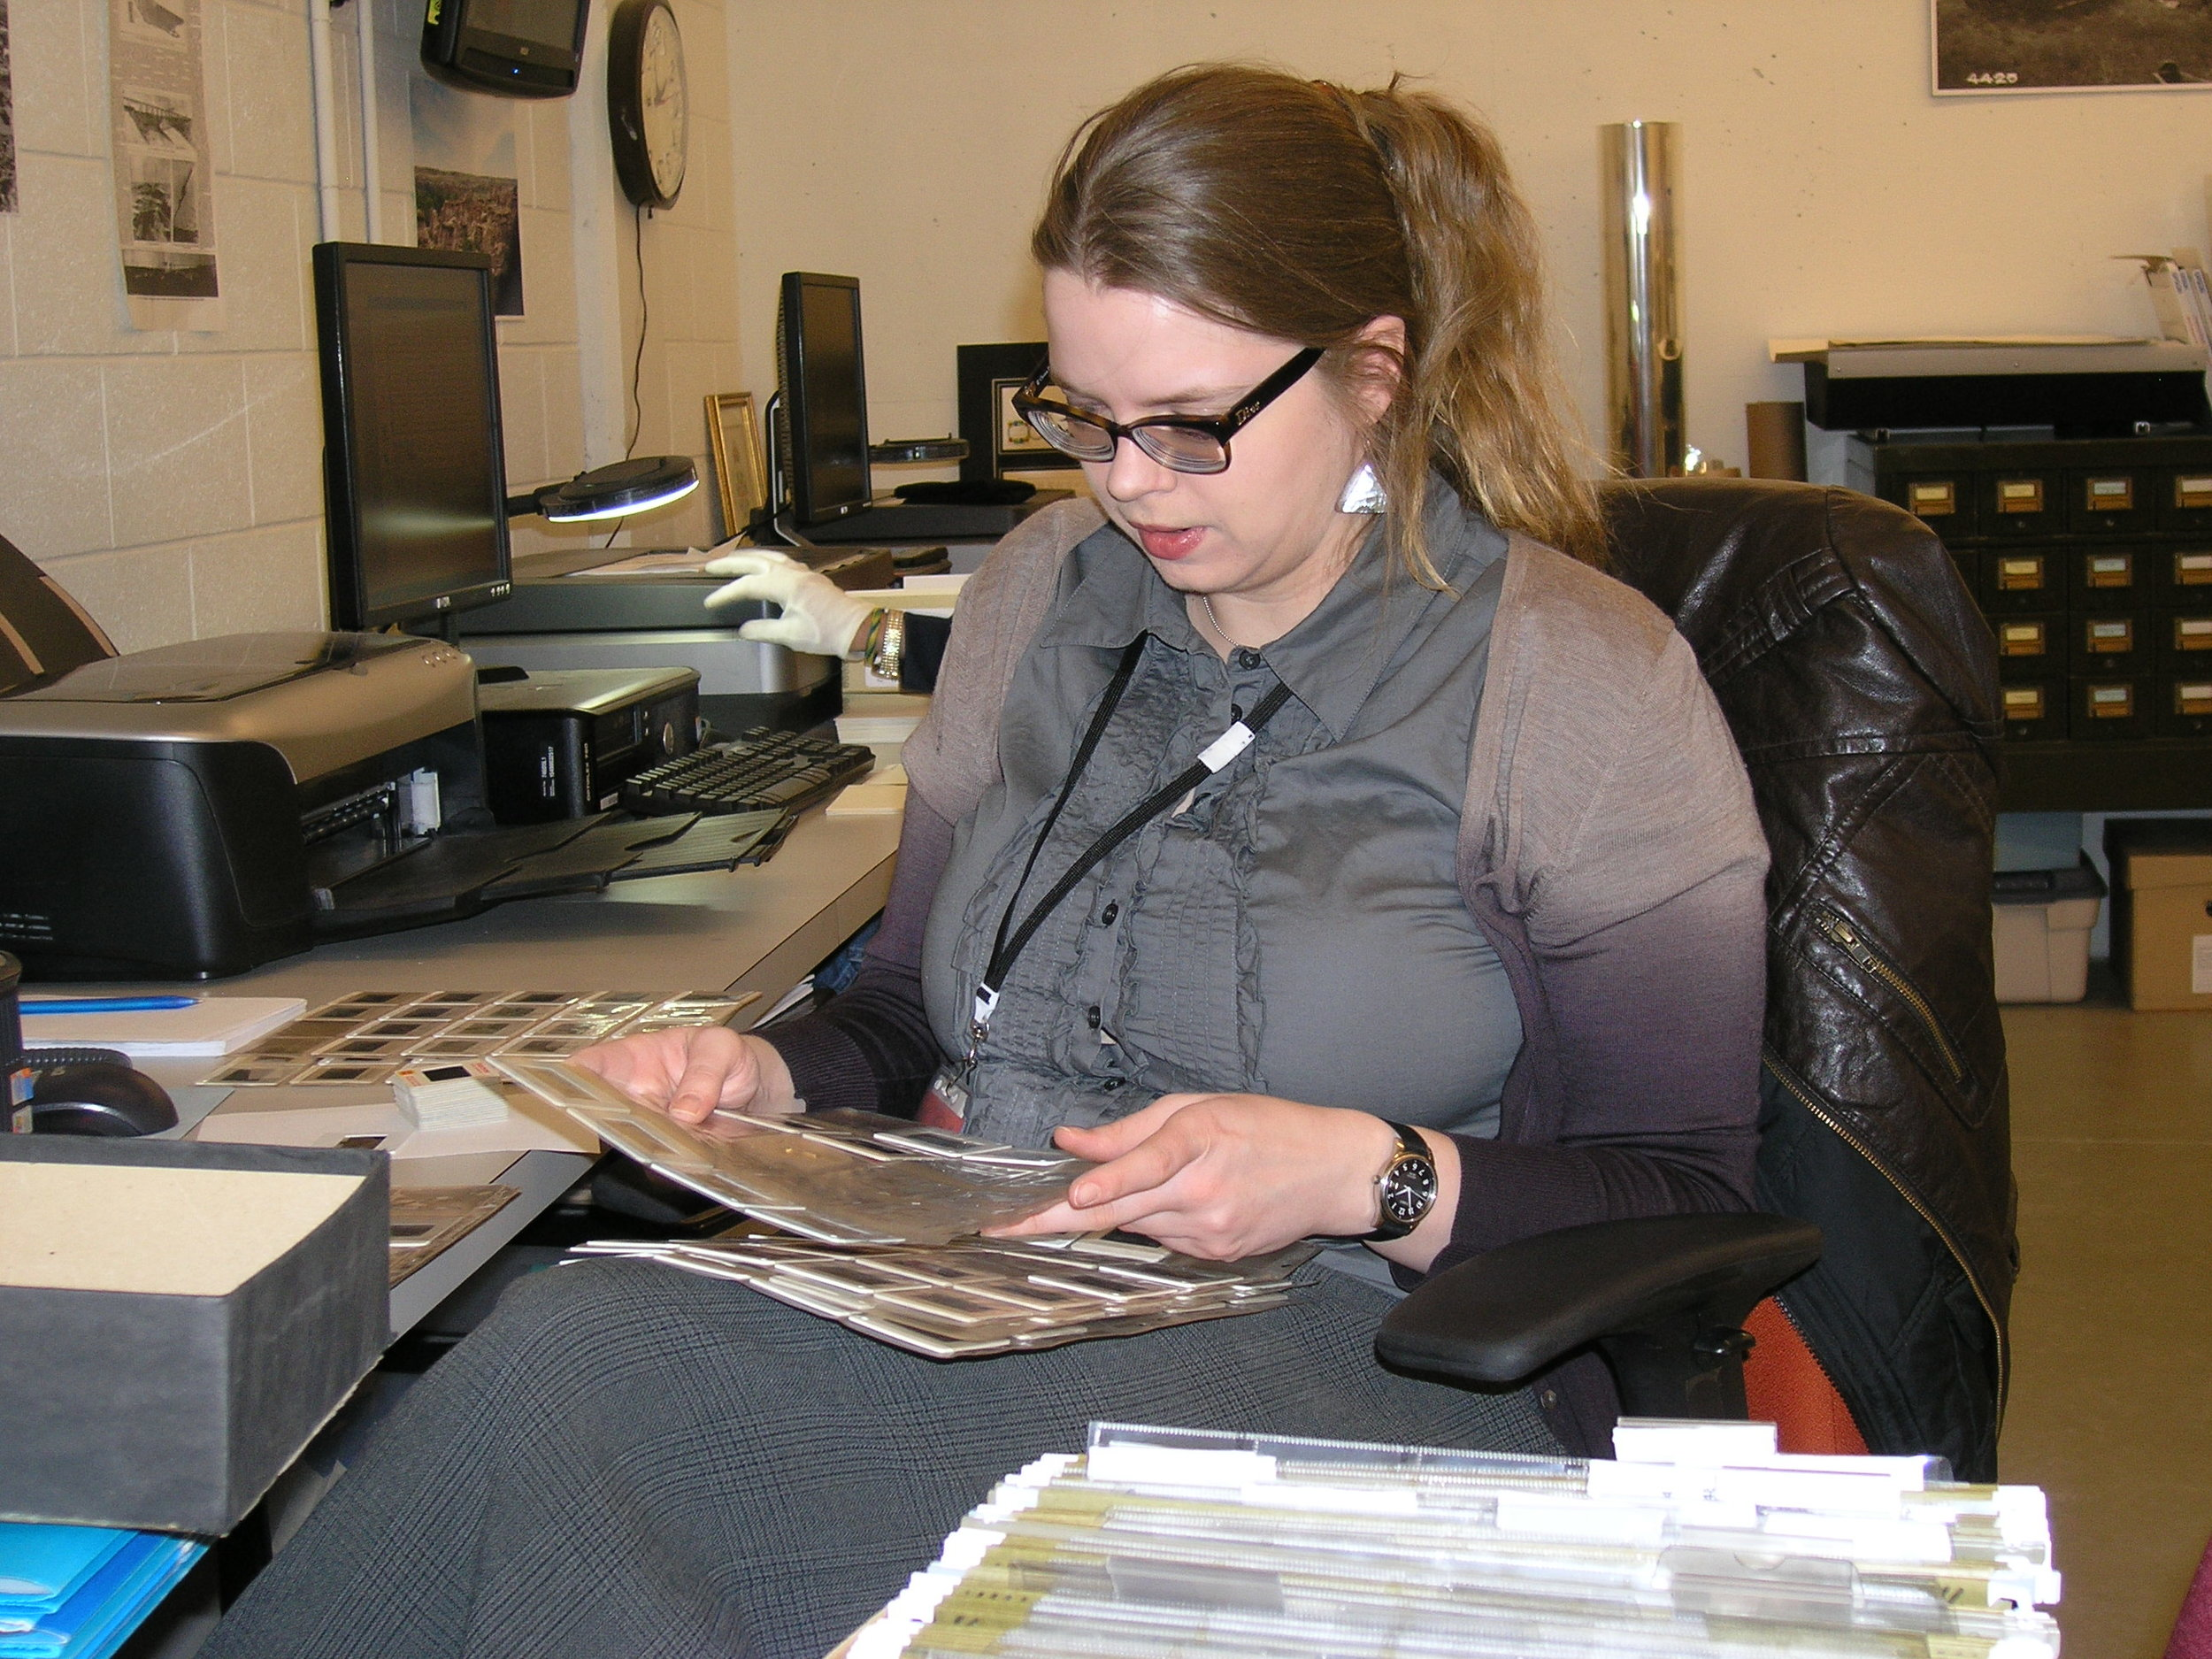 University of Lethbridge History and Museum Studies graduate  Jennifer Vanderfluit , seen here in 2011, gained valuable experience at the Galt Museum & Archives throughout her undergraduate studies.